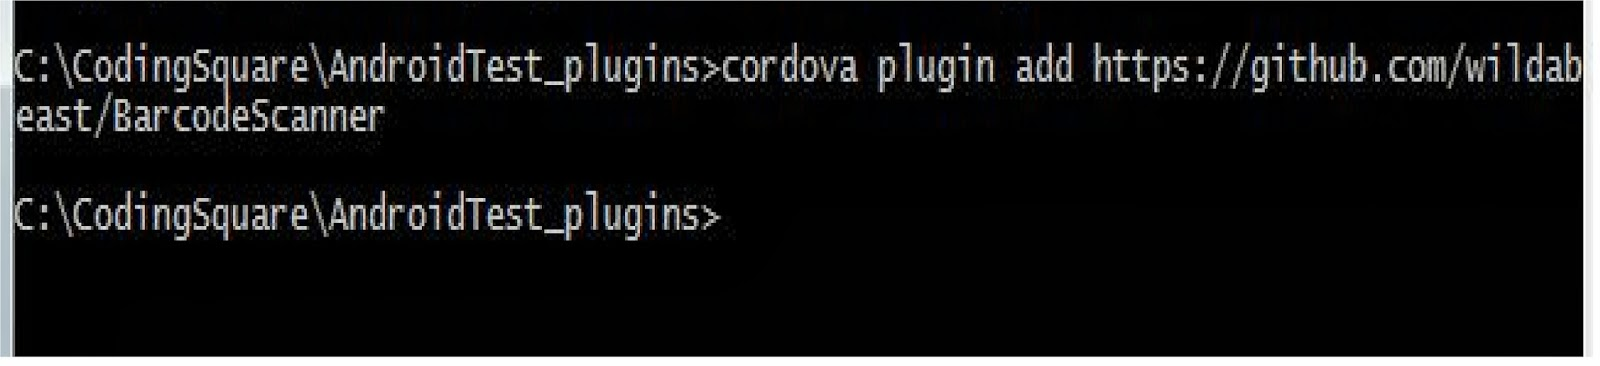 Coding Square: Adding plugins to your Cordova Android project